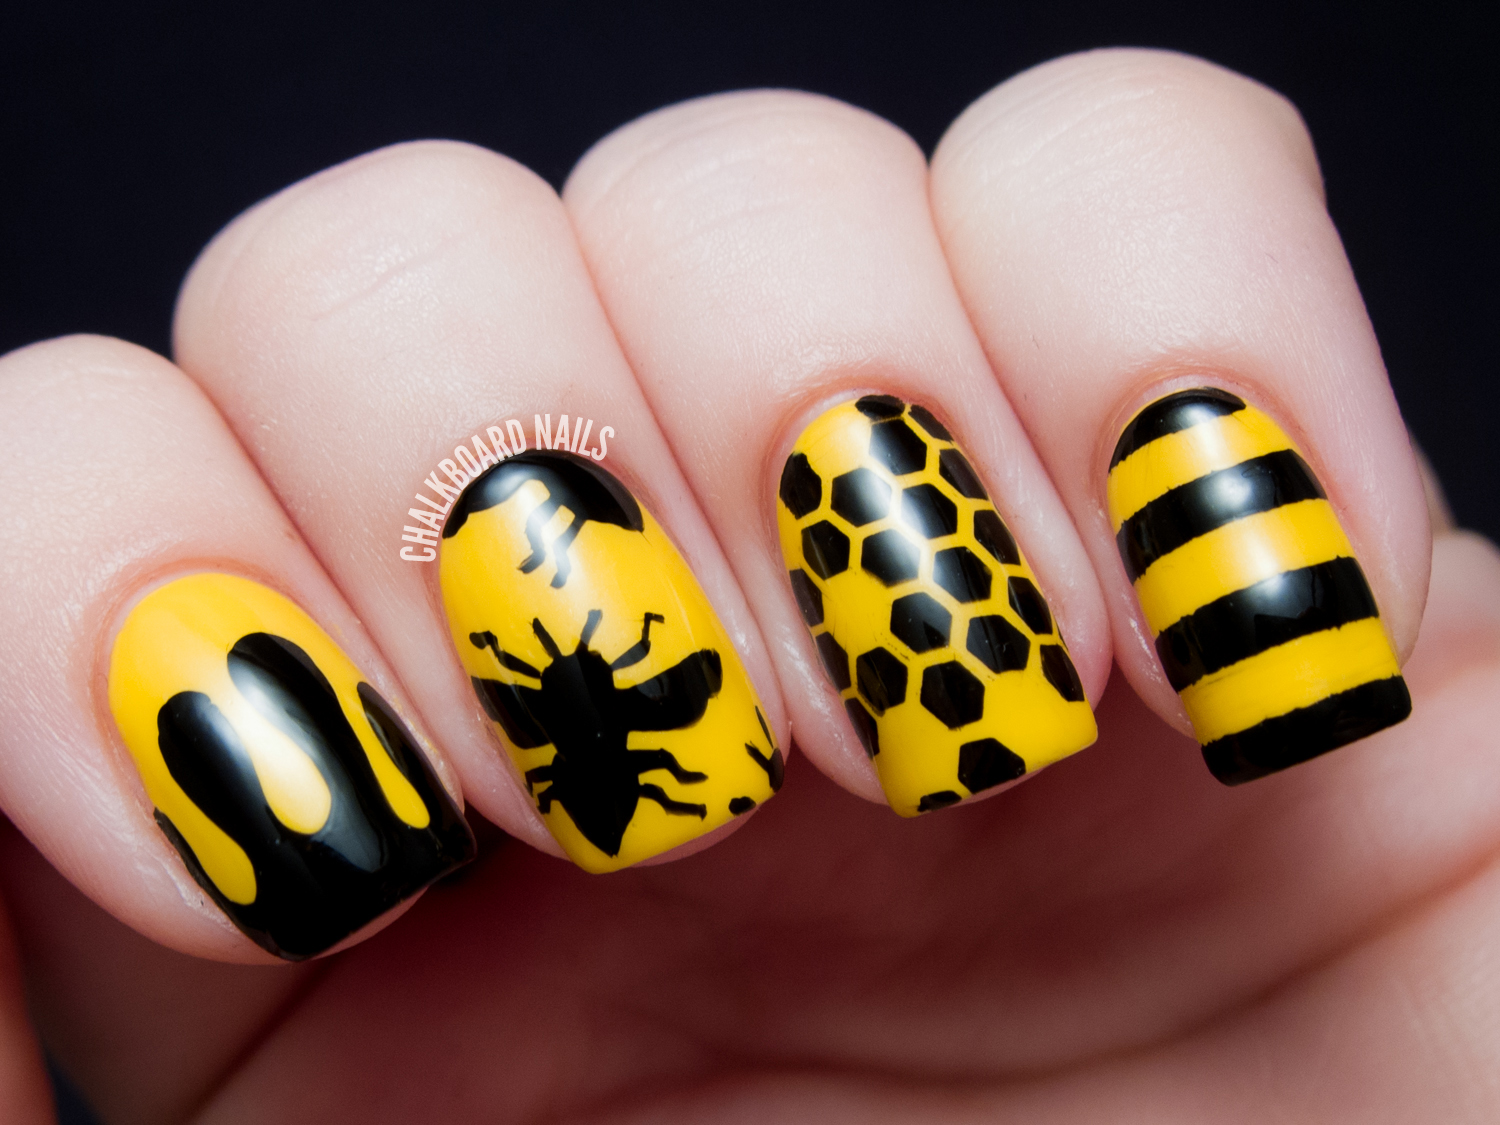 31dc2013 day 03 yellow bee silhouettes chalkboard nails nail 31dc2013 day 03 yellow bee silhouettes chalkboard nails nail art blog prinsesfo Choice Image